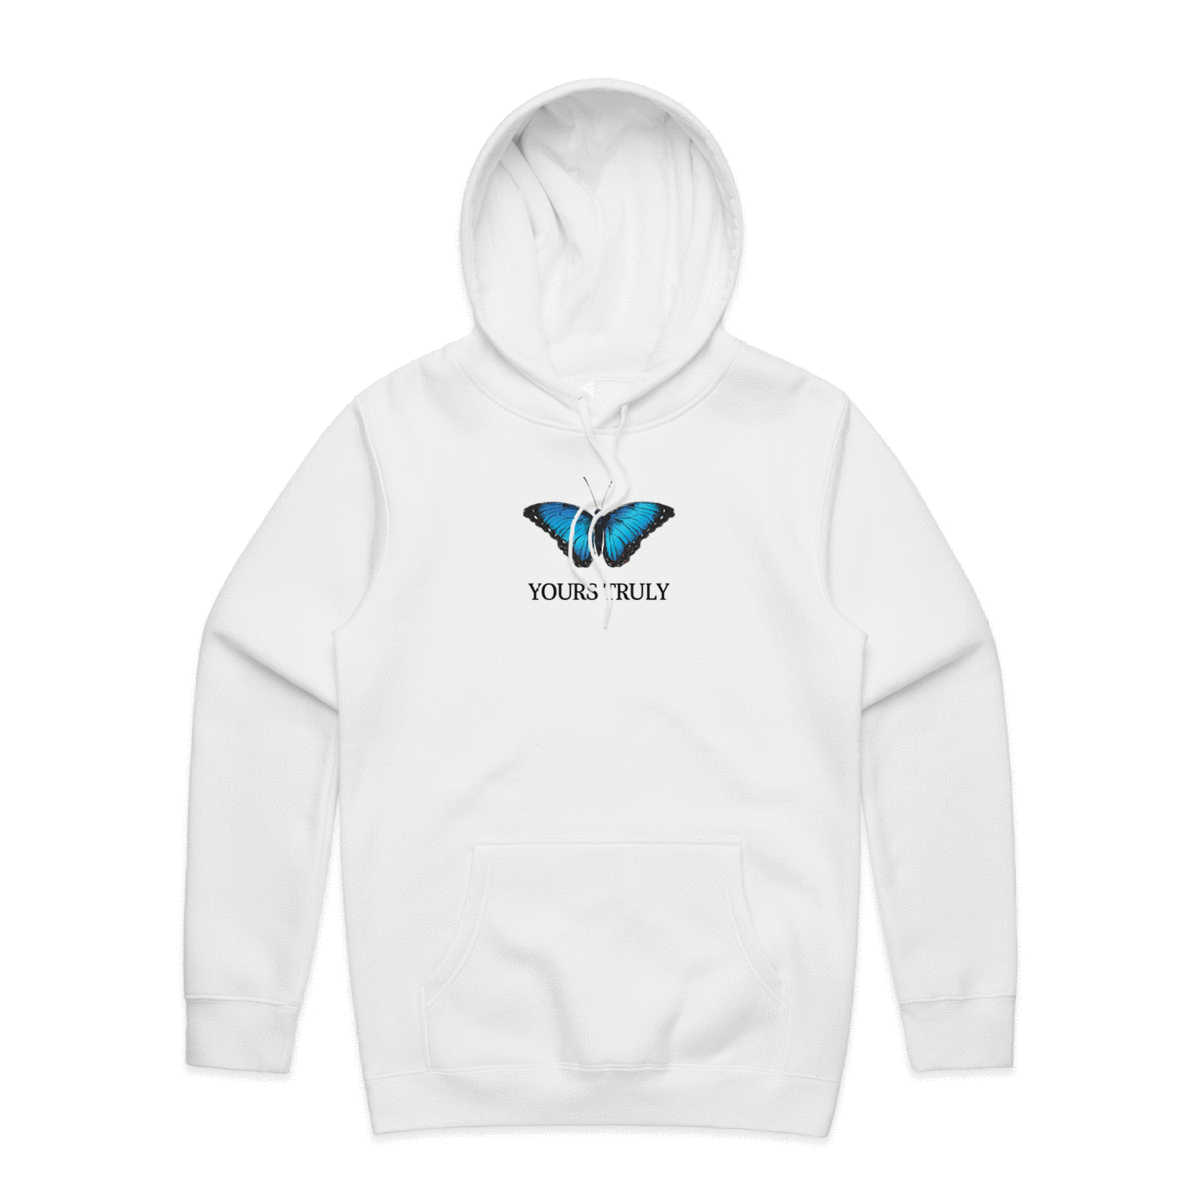 Yours Truly Blue Butterfly Hoodie White Yours Truly Clothing Hoodies White Hoodie Yours Truly Clothing